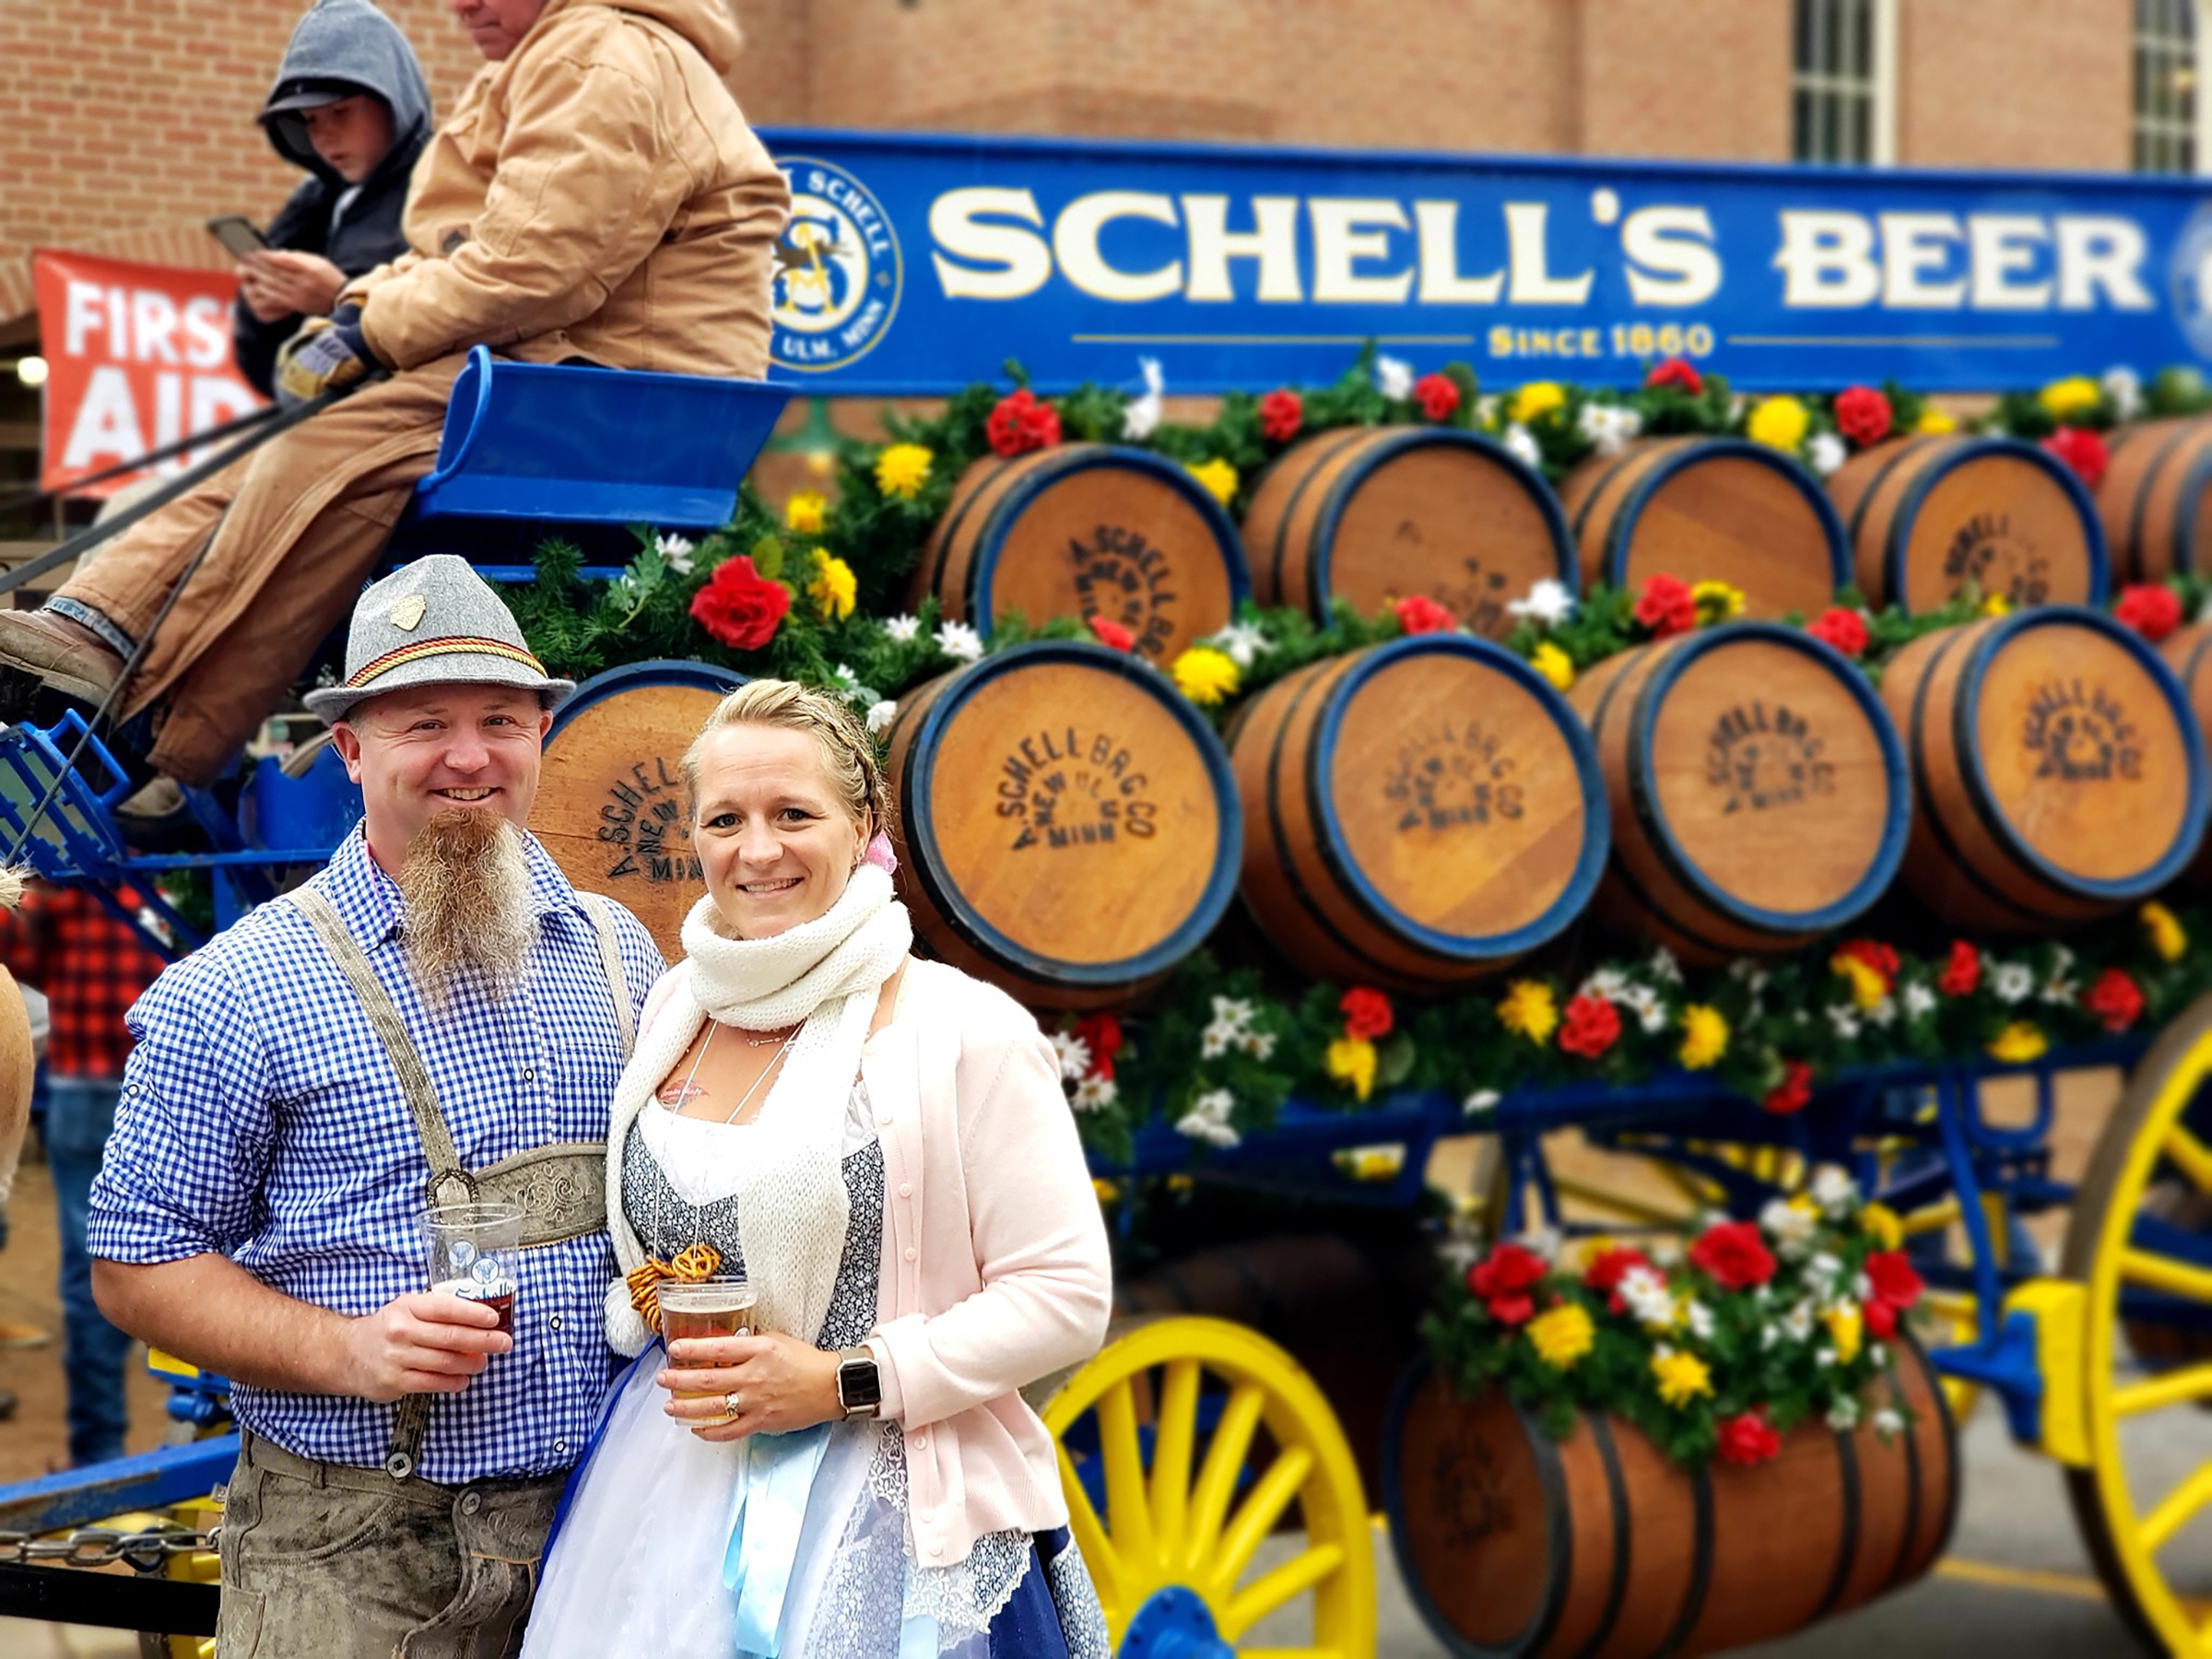 A couple drinks beer in front of Schell's Beer at Oktoberfest in New Ulm.